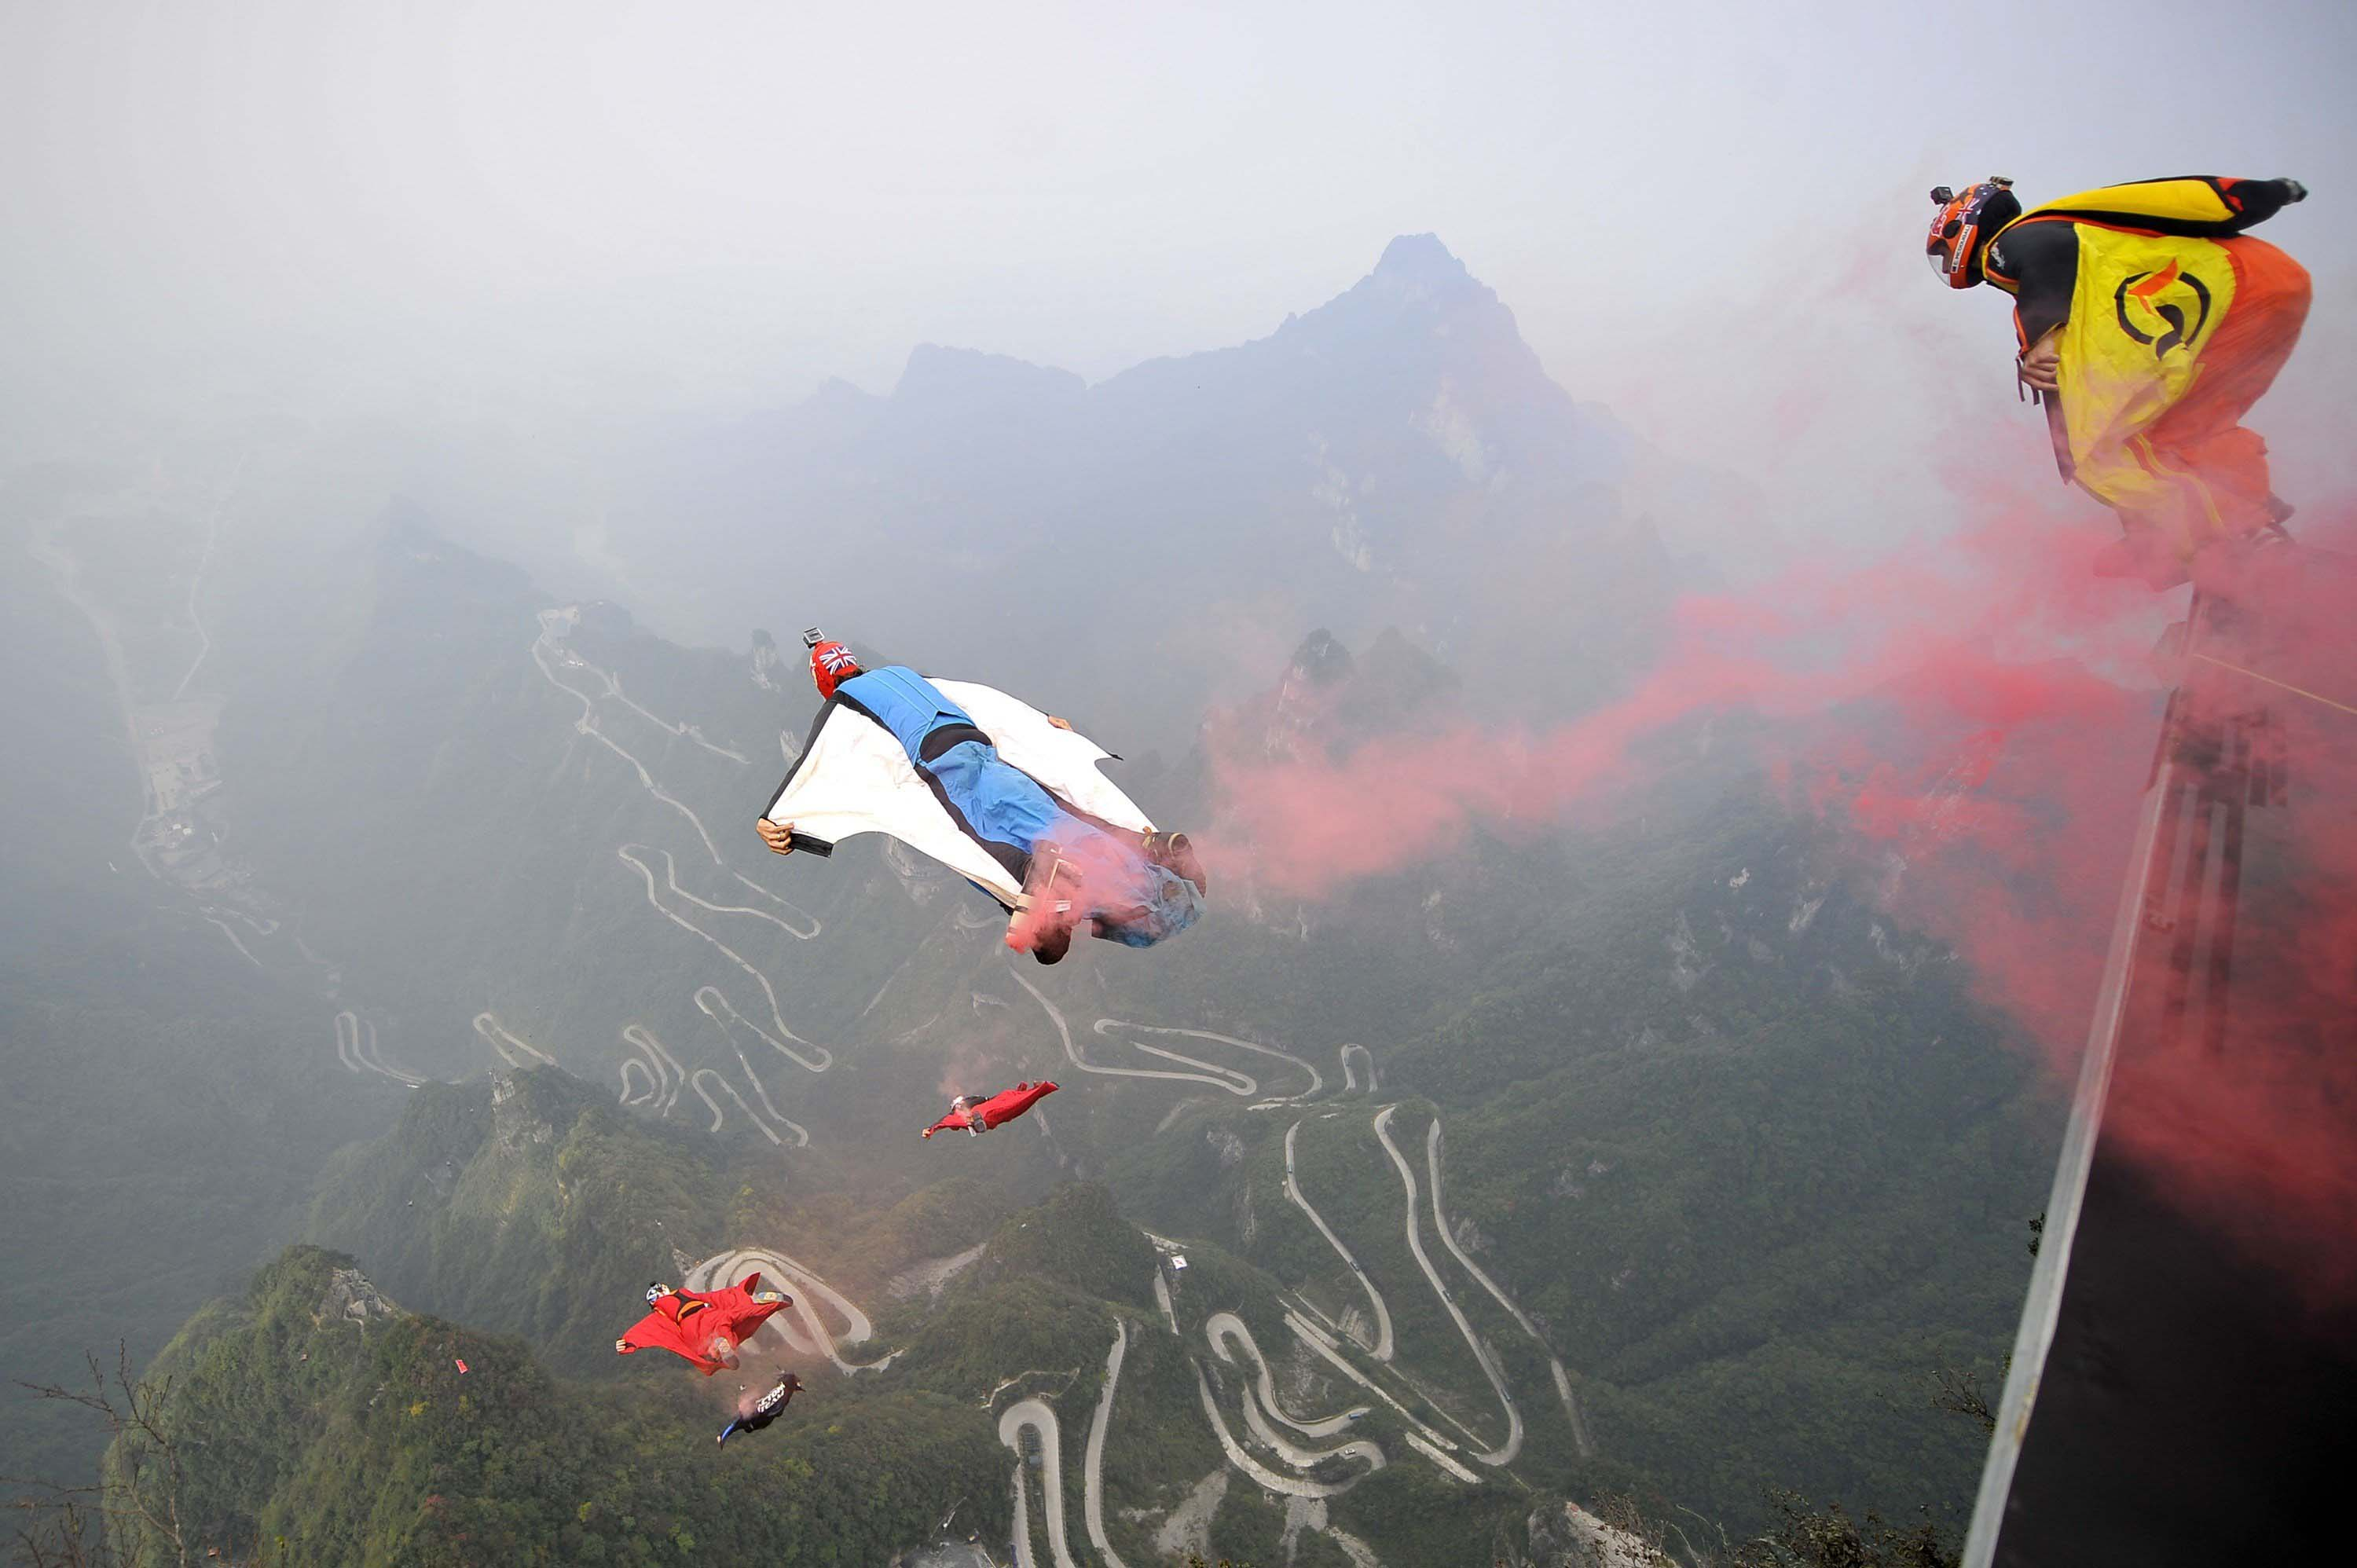 Wingsuit flyer contestants jump off a mountain at Tianmen Mountain National Park in Zhangjiajie, Hunan province, China on Oct. 19, 2014.